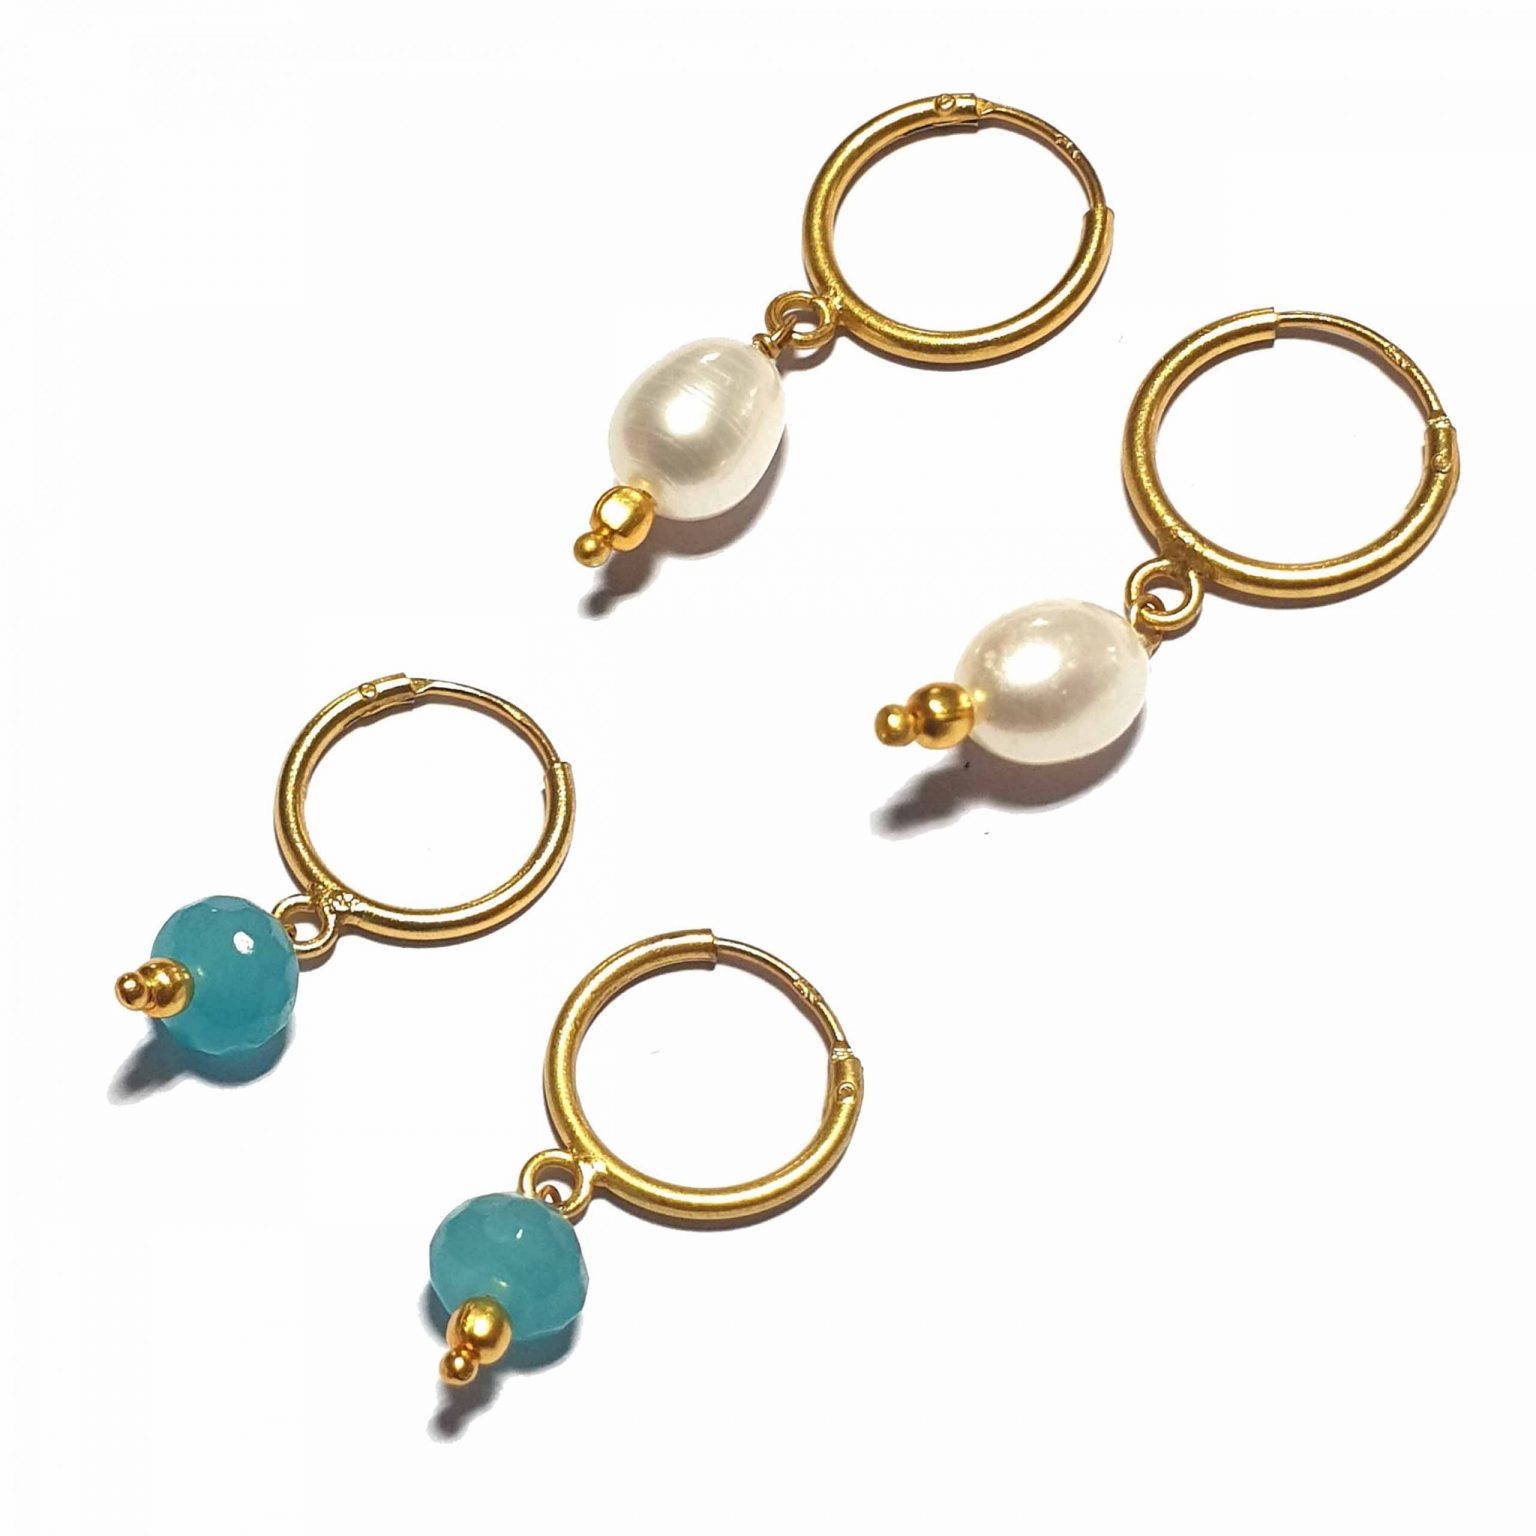 Silver Bali Set of 2 Combo with Blue Chalcedony and White Pearl Gold Polished Bali in Pure Silver 925 | Earrings for Women